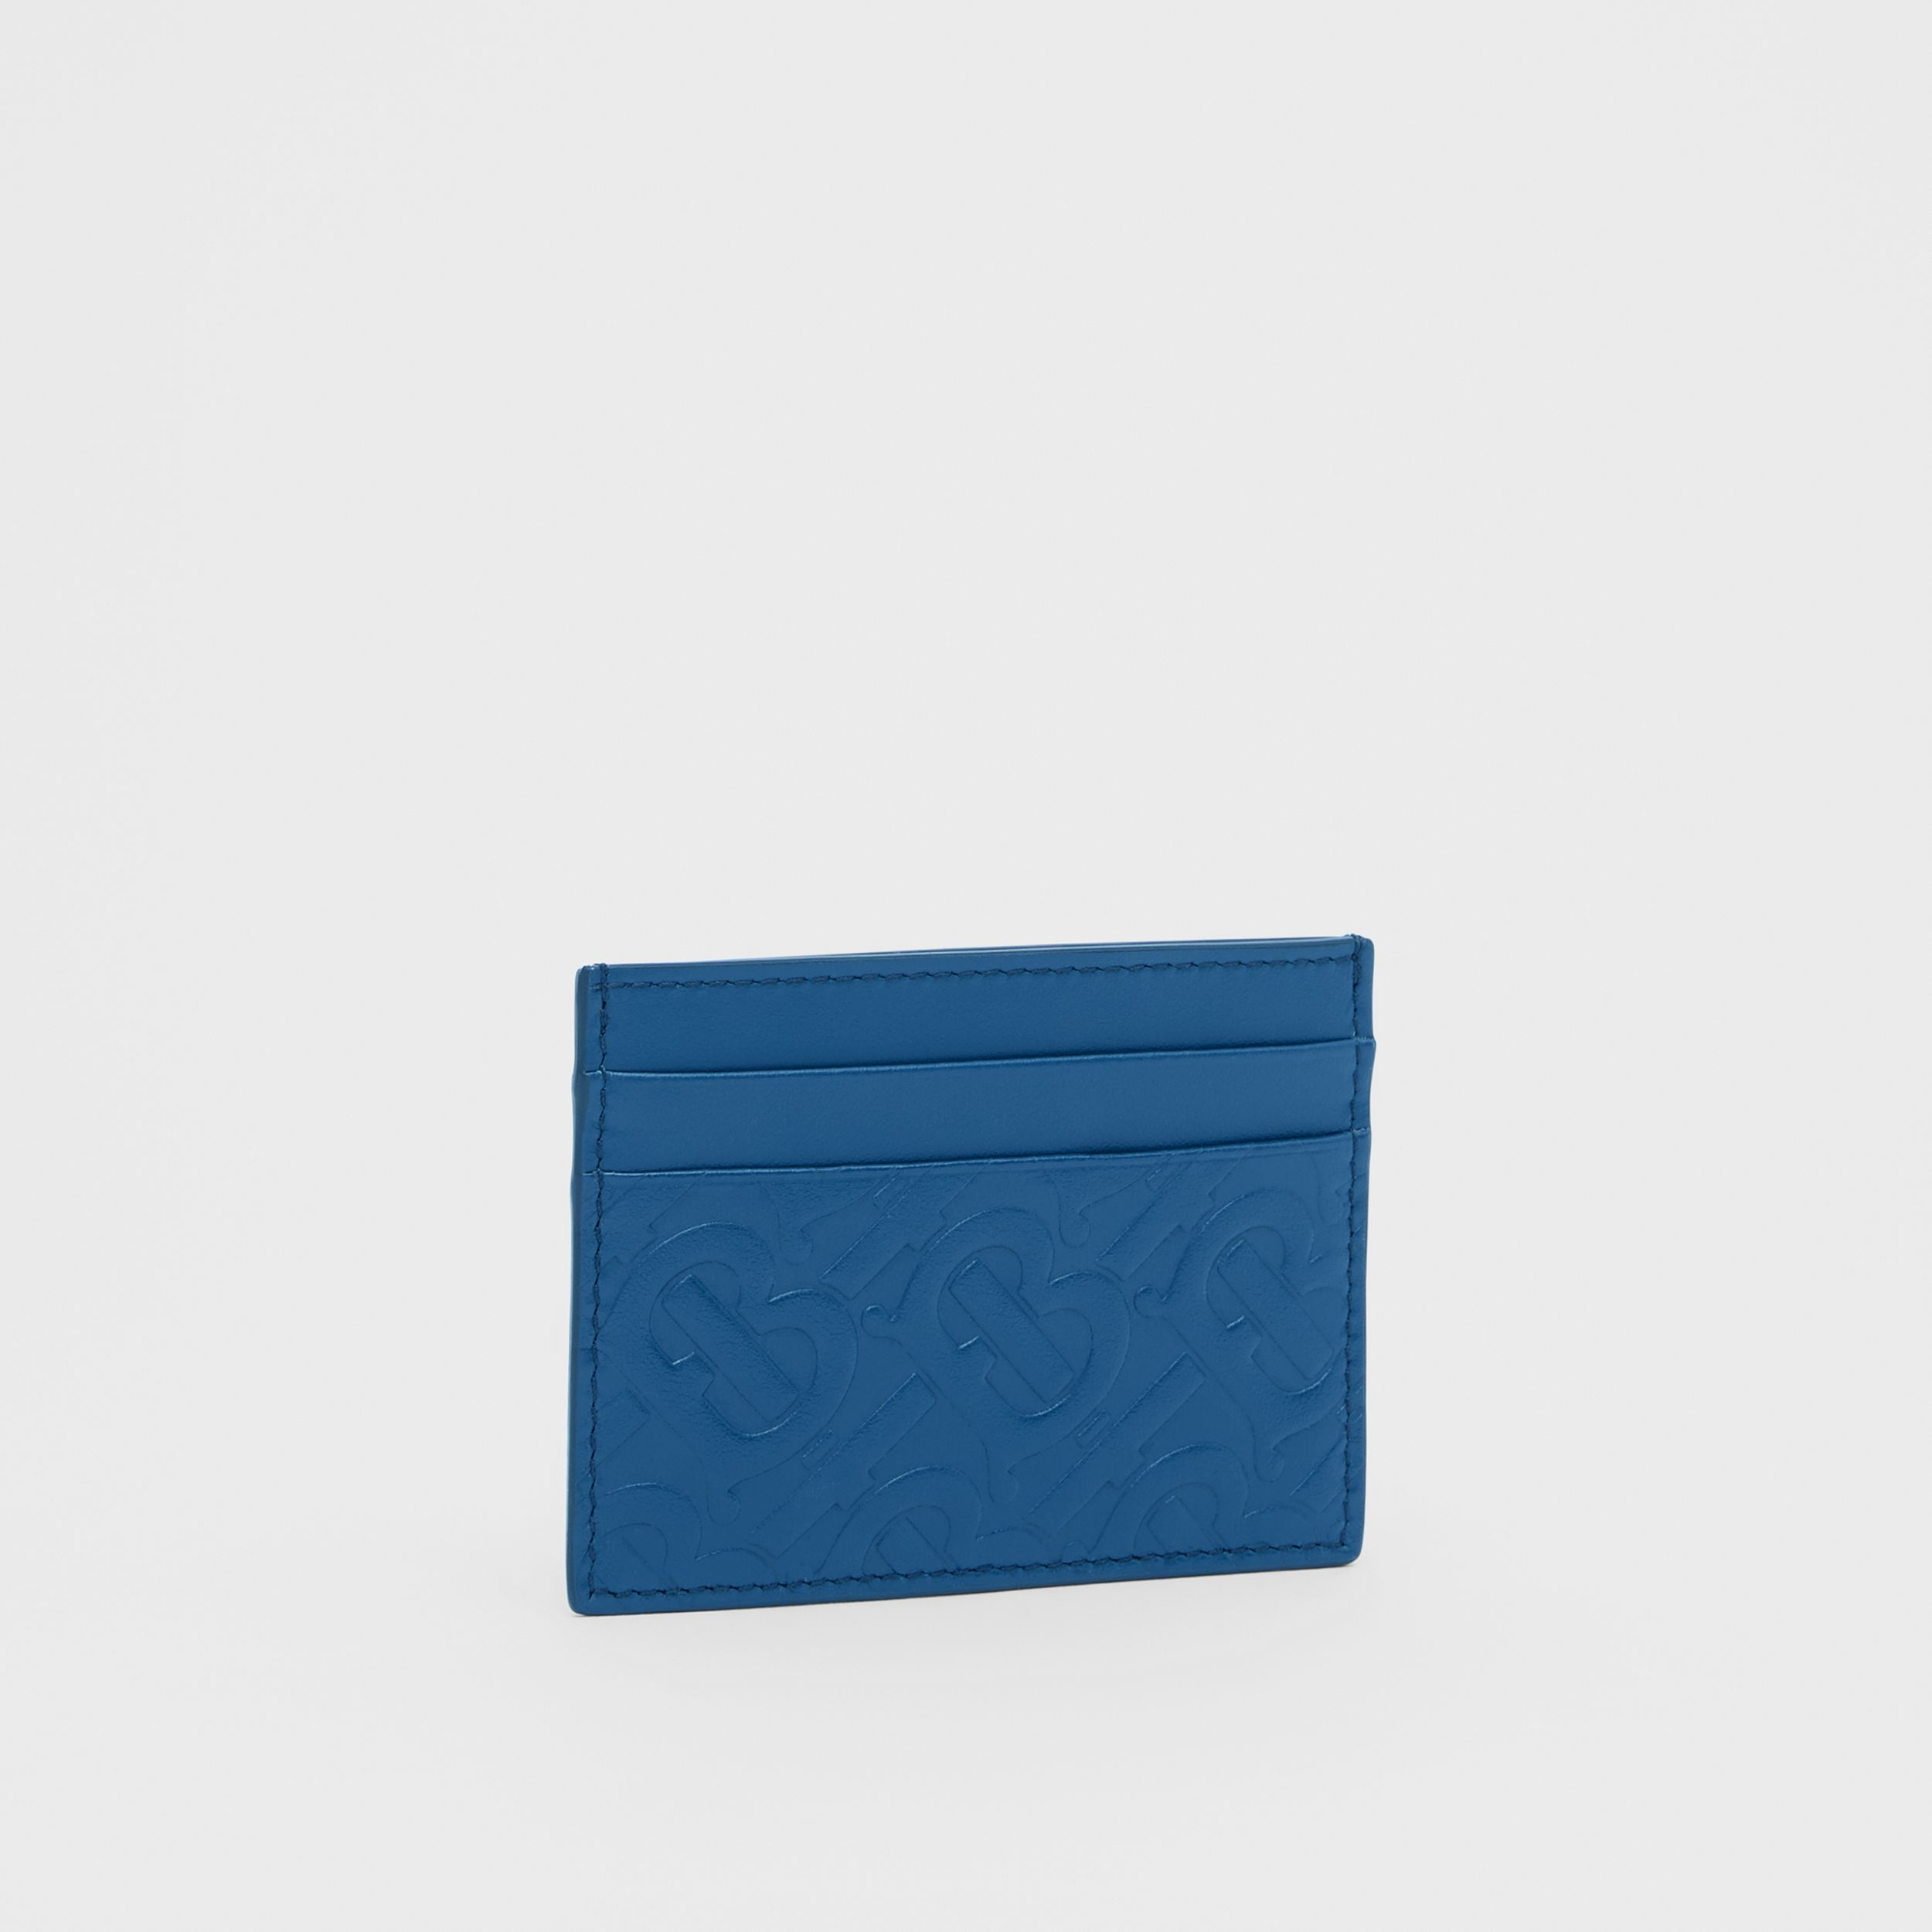 Monogram Leather Card Case in Pale Canvas Blue - Men | Burberry Canada - 4